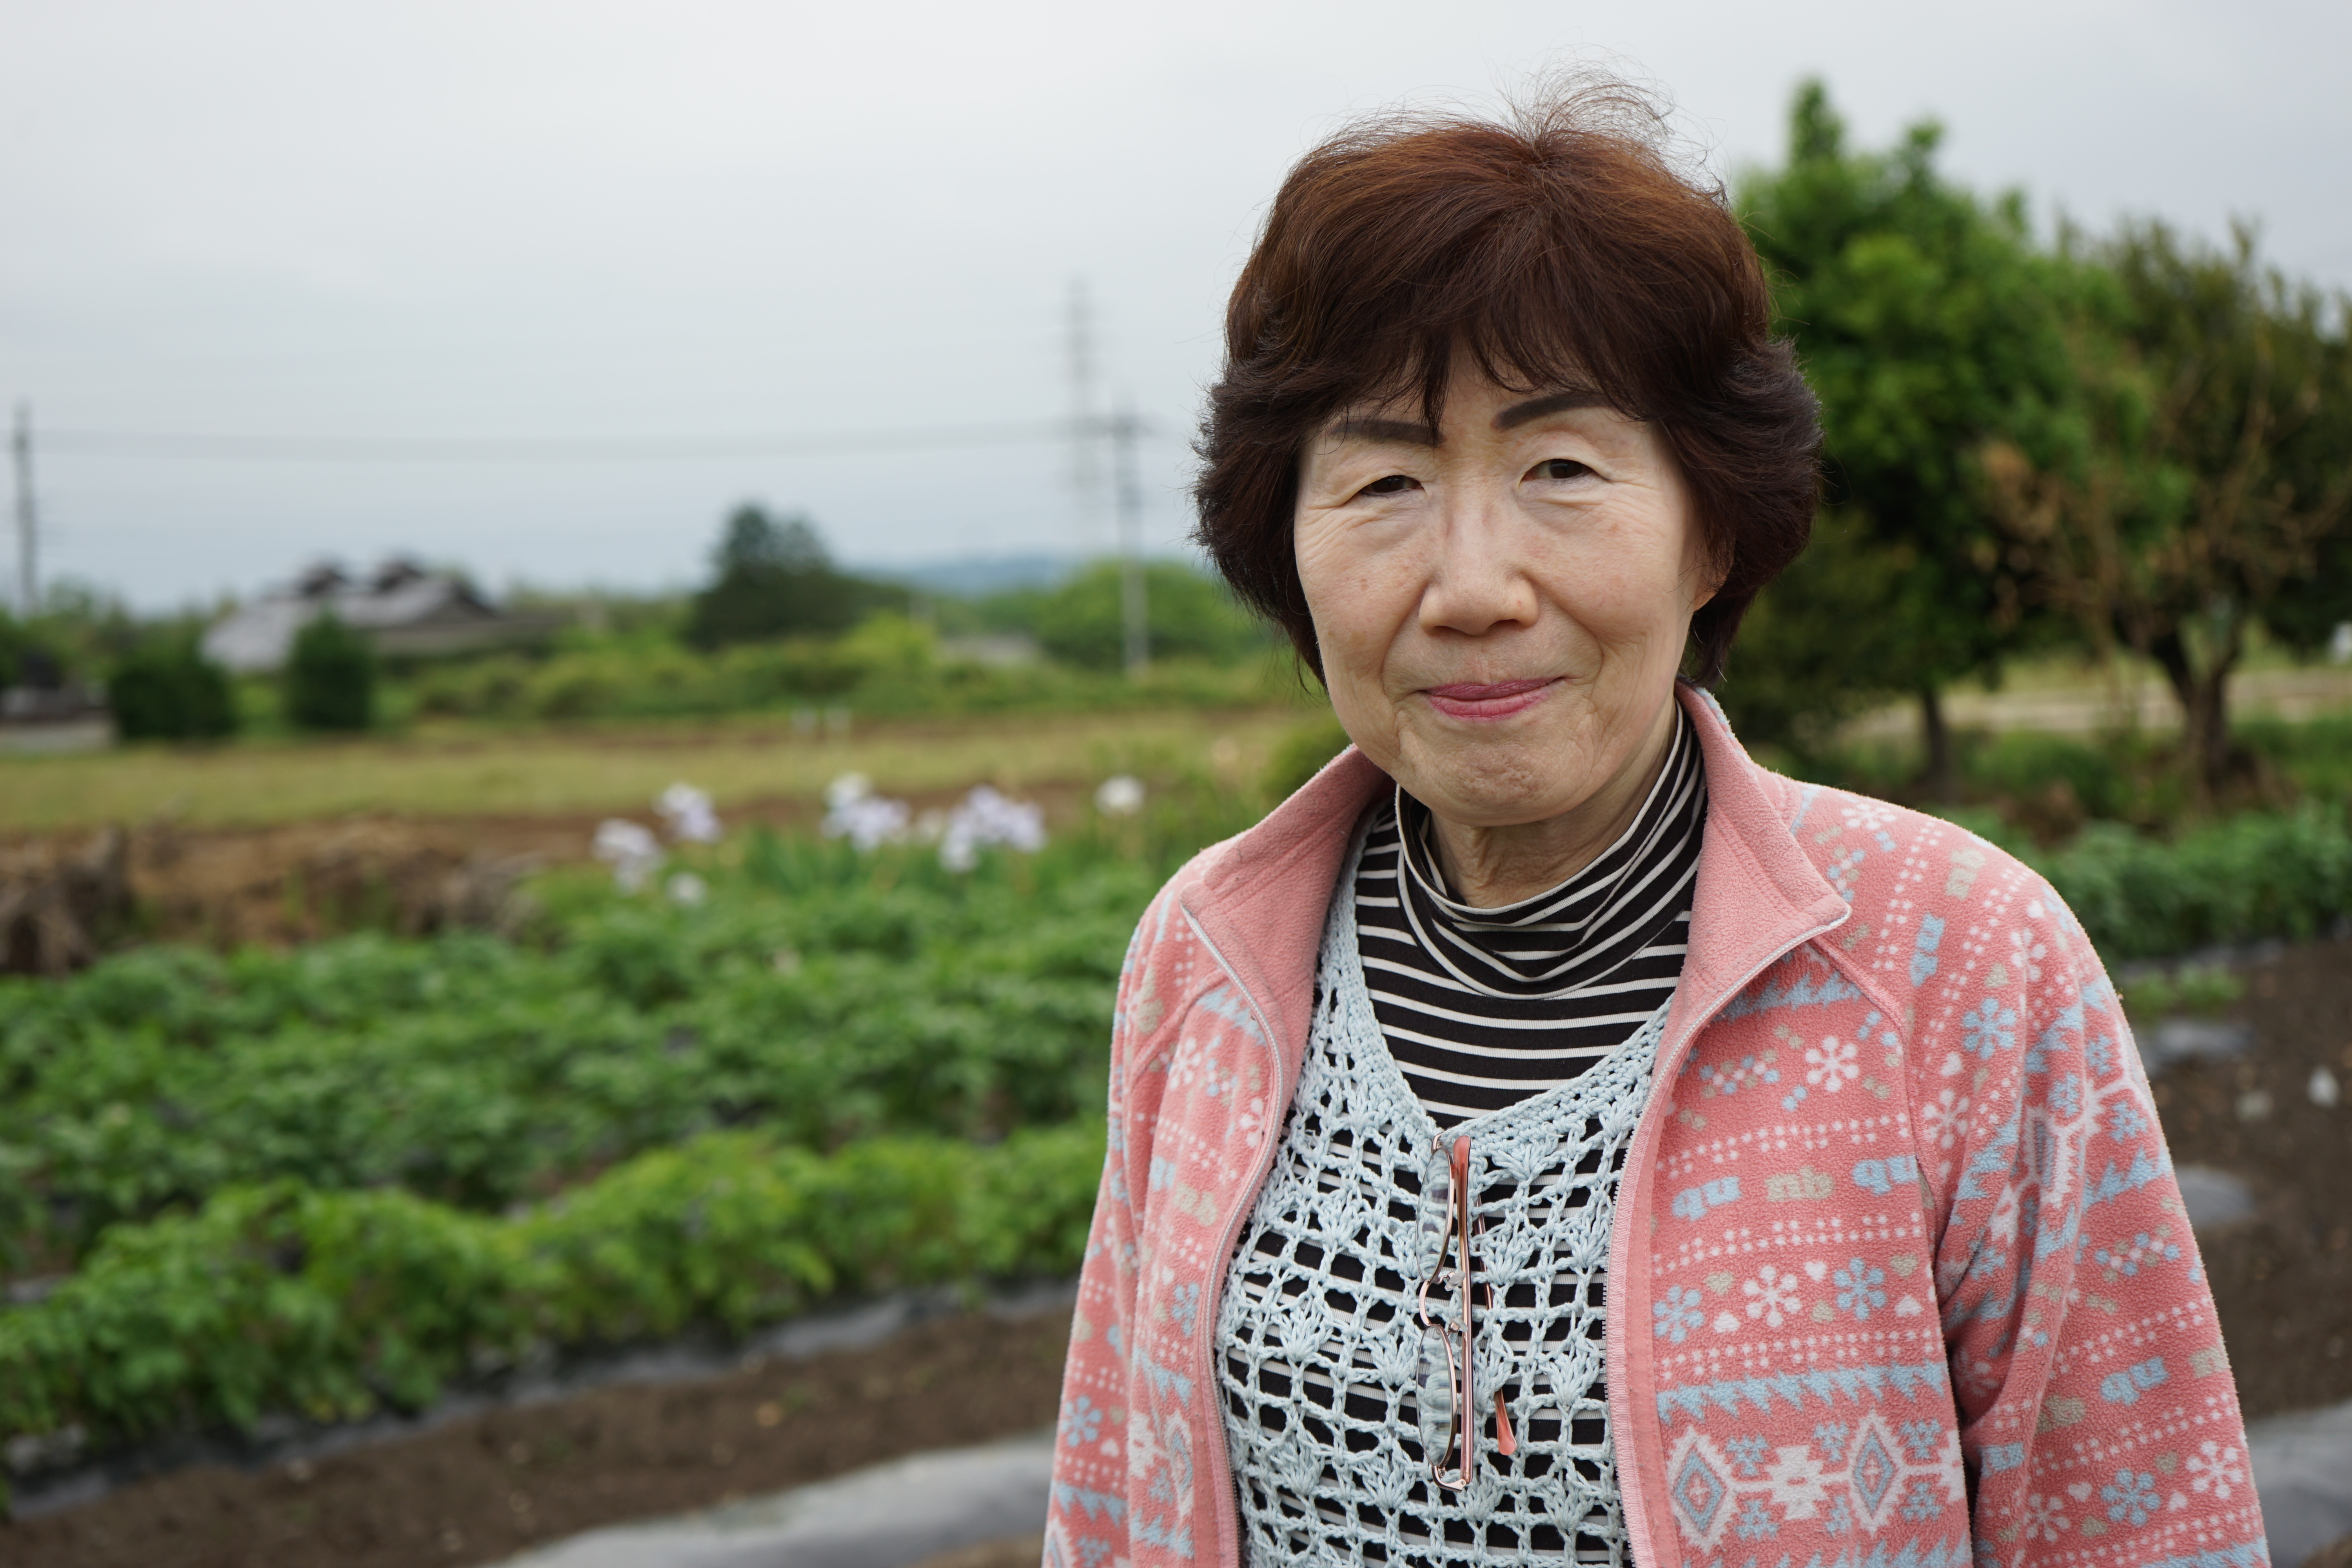 Chizuru Shimizu's self-sufficient way of life just outside of Tokyo